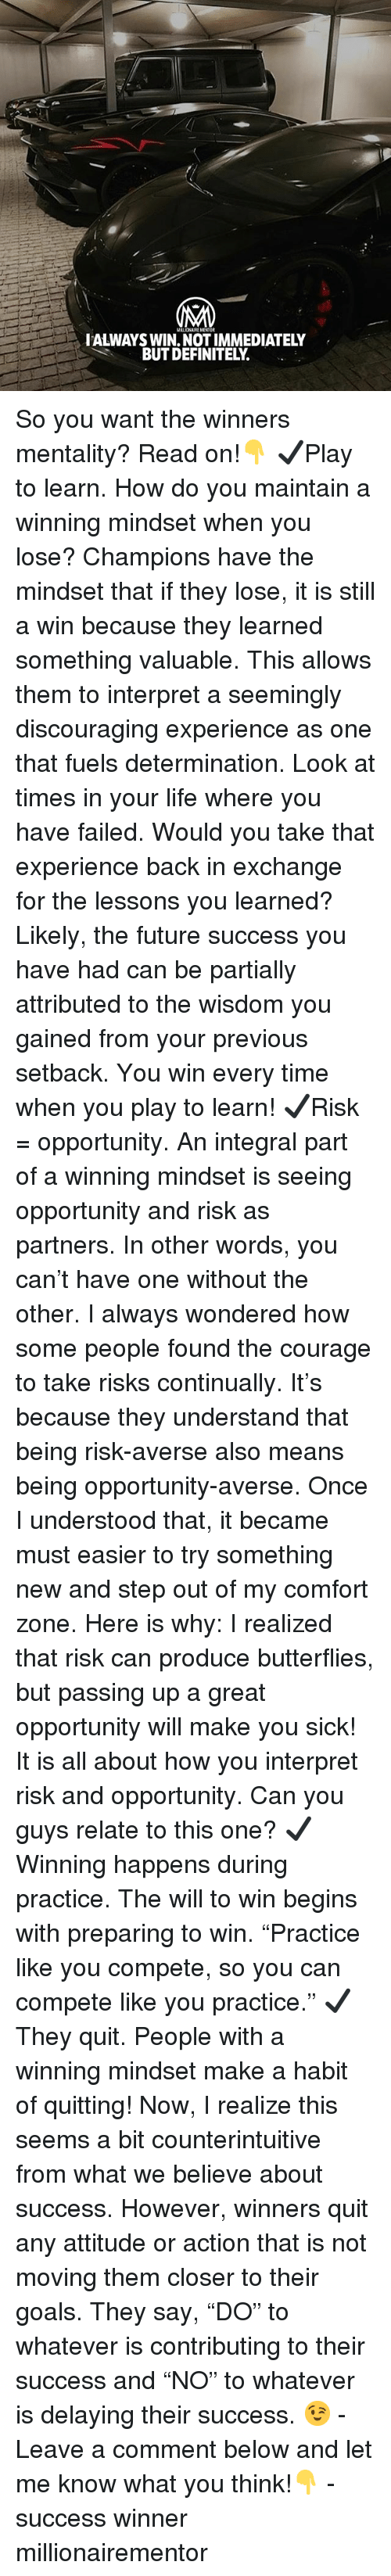 "Definitely, Future, and Goals: WILLIONAIRE MENTOR  IALWAYS WIN. NOT IMMEDIATELY  BUT DEFINITELY. So you want the winners mentality? Read on!👇 ✔️Play to learn. How do you maintain a winning mindset when you lose? Champions have the mindset that if they lose, it is still a win because they learned something valuable. This allows them to interpret a seemingly discouraging experience as one that fuels determination. Look at times in your life where you have failed. Would you take that experience back in exchange for the lessons you learned? Likely, the future success you have had can be partially attributed to the wisdom you gained from your previous setback. You win every time when you play to learn! ✔️Risk = opportunity. An integral part of a winning mindset is seeing opportunity and risk as partners. In other words, you can't have one without the other. I always wondered how some people found the courage to take risks continually. It's because they understand that being risk-averse also means being opportunity-averse. Once I understood that, it became must easier to try something new and step out of my comfort zone. Here is why: I realized that risk can produce butterflies, but passing up a great opportunity will make you sick! It is all about how you interpret risk and opportunity. Can you guys relate to this one? ✔️Winning happens during practice. The will to win begins with preparing to win. ""Practice like you compete, so you can compete like you practice."" ✔️They quit. People with a winning mindset make a habit of quitting! Now, I realize this seems a bit counterintuitive from what we believe about success. However, winners quit any attitude or action that is not moving them closer to their goals. They say, ""DO"" to whatever is contributing to their success and ""NO"" to whatever is delaying their success. 😉 - Leave a comment below and let me know what you think!👇 - success winner millionairementor"